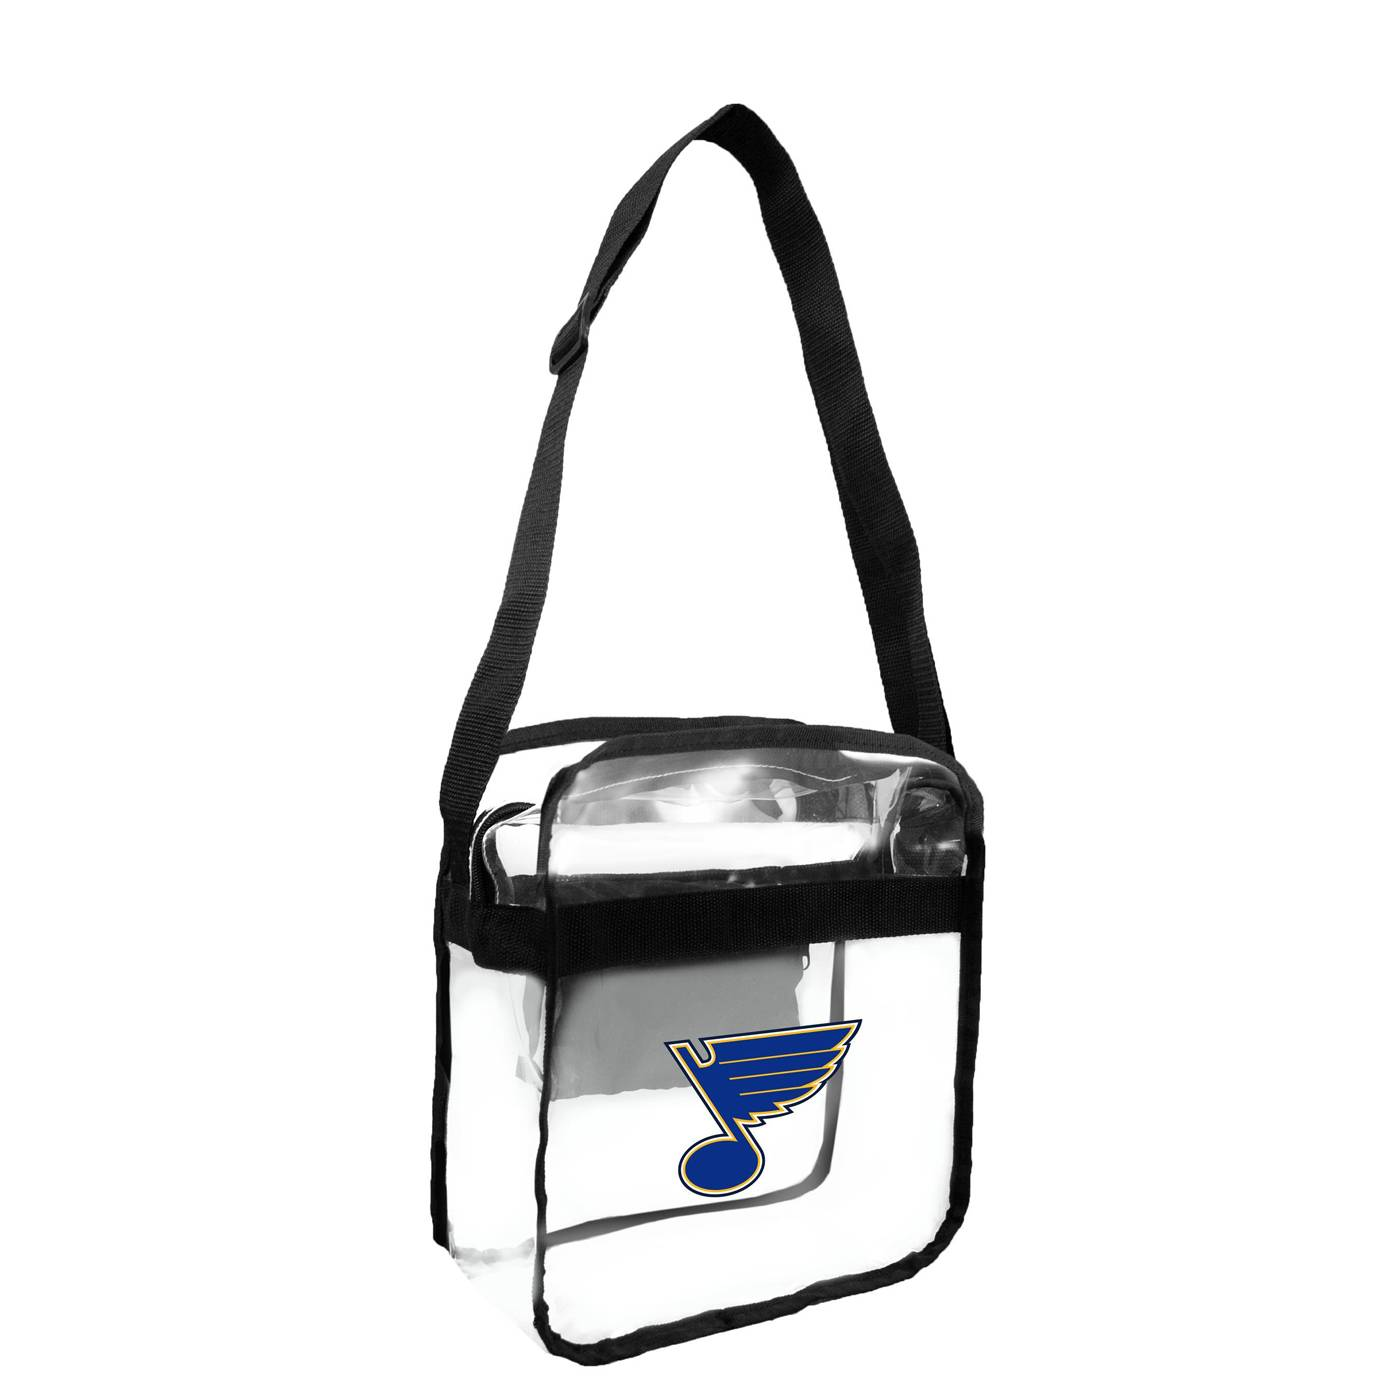 Designed To Work Within Most Stadium Roved Bag Guidelines The St Louis Blues Clear Crossbody Carry All Makes A Great Day Tote